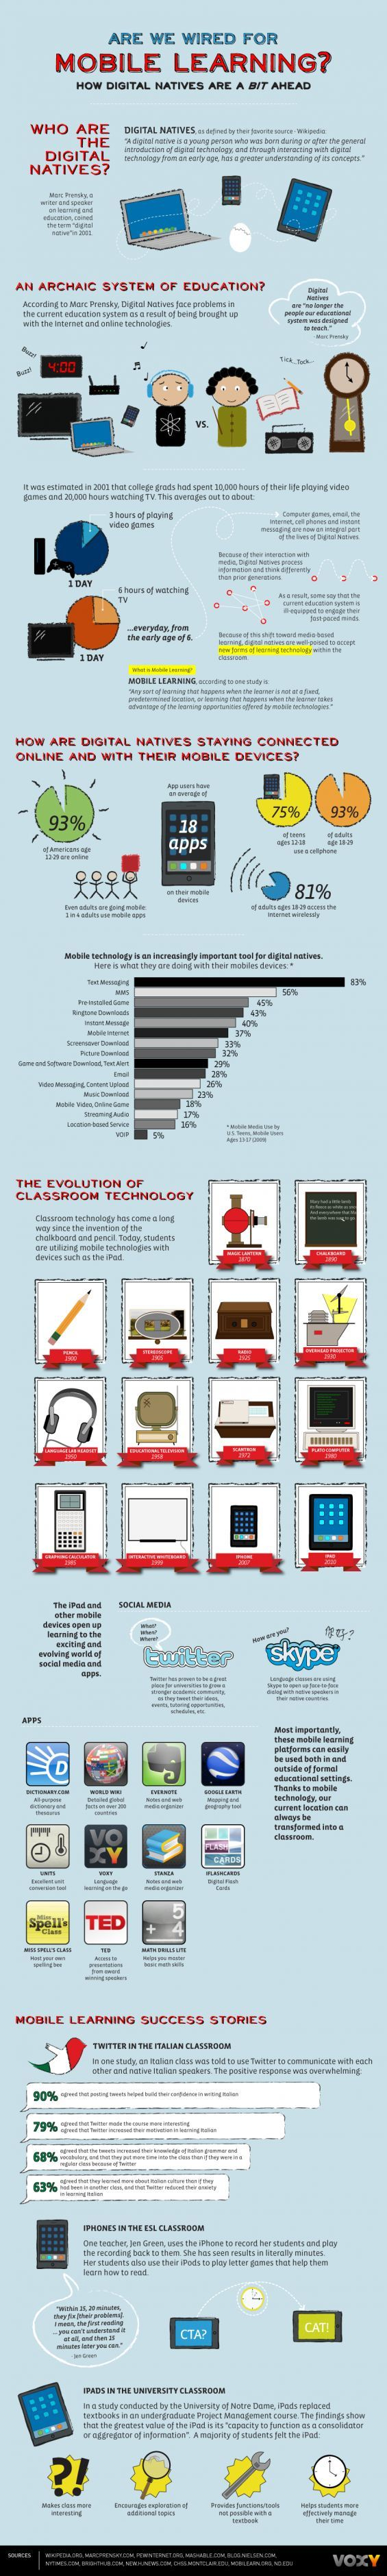 Mobile Learning Infographic How Digital Natives Are A Bit A Head